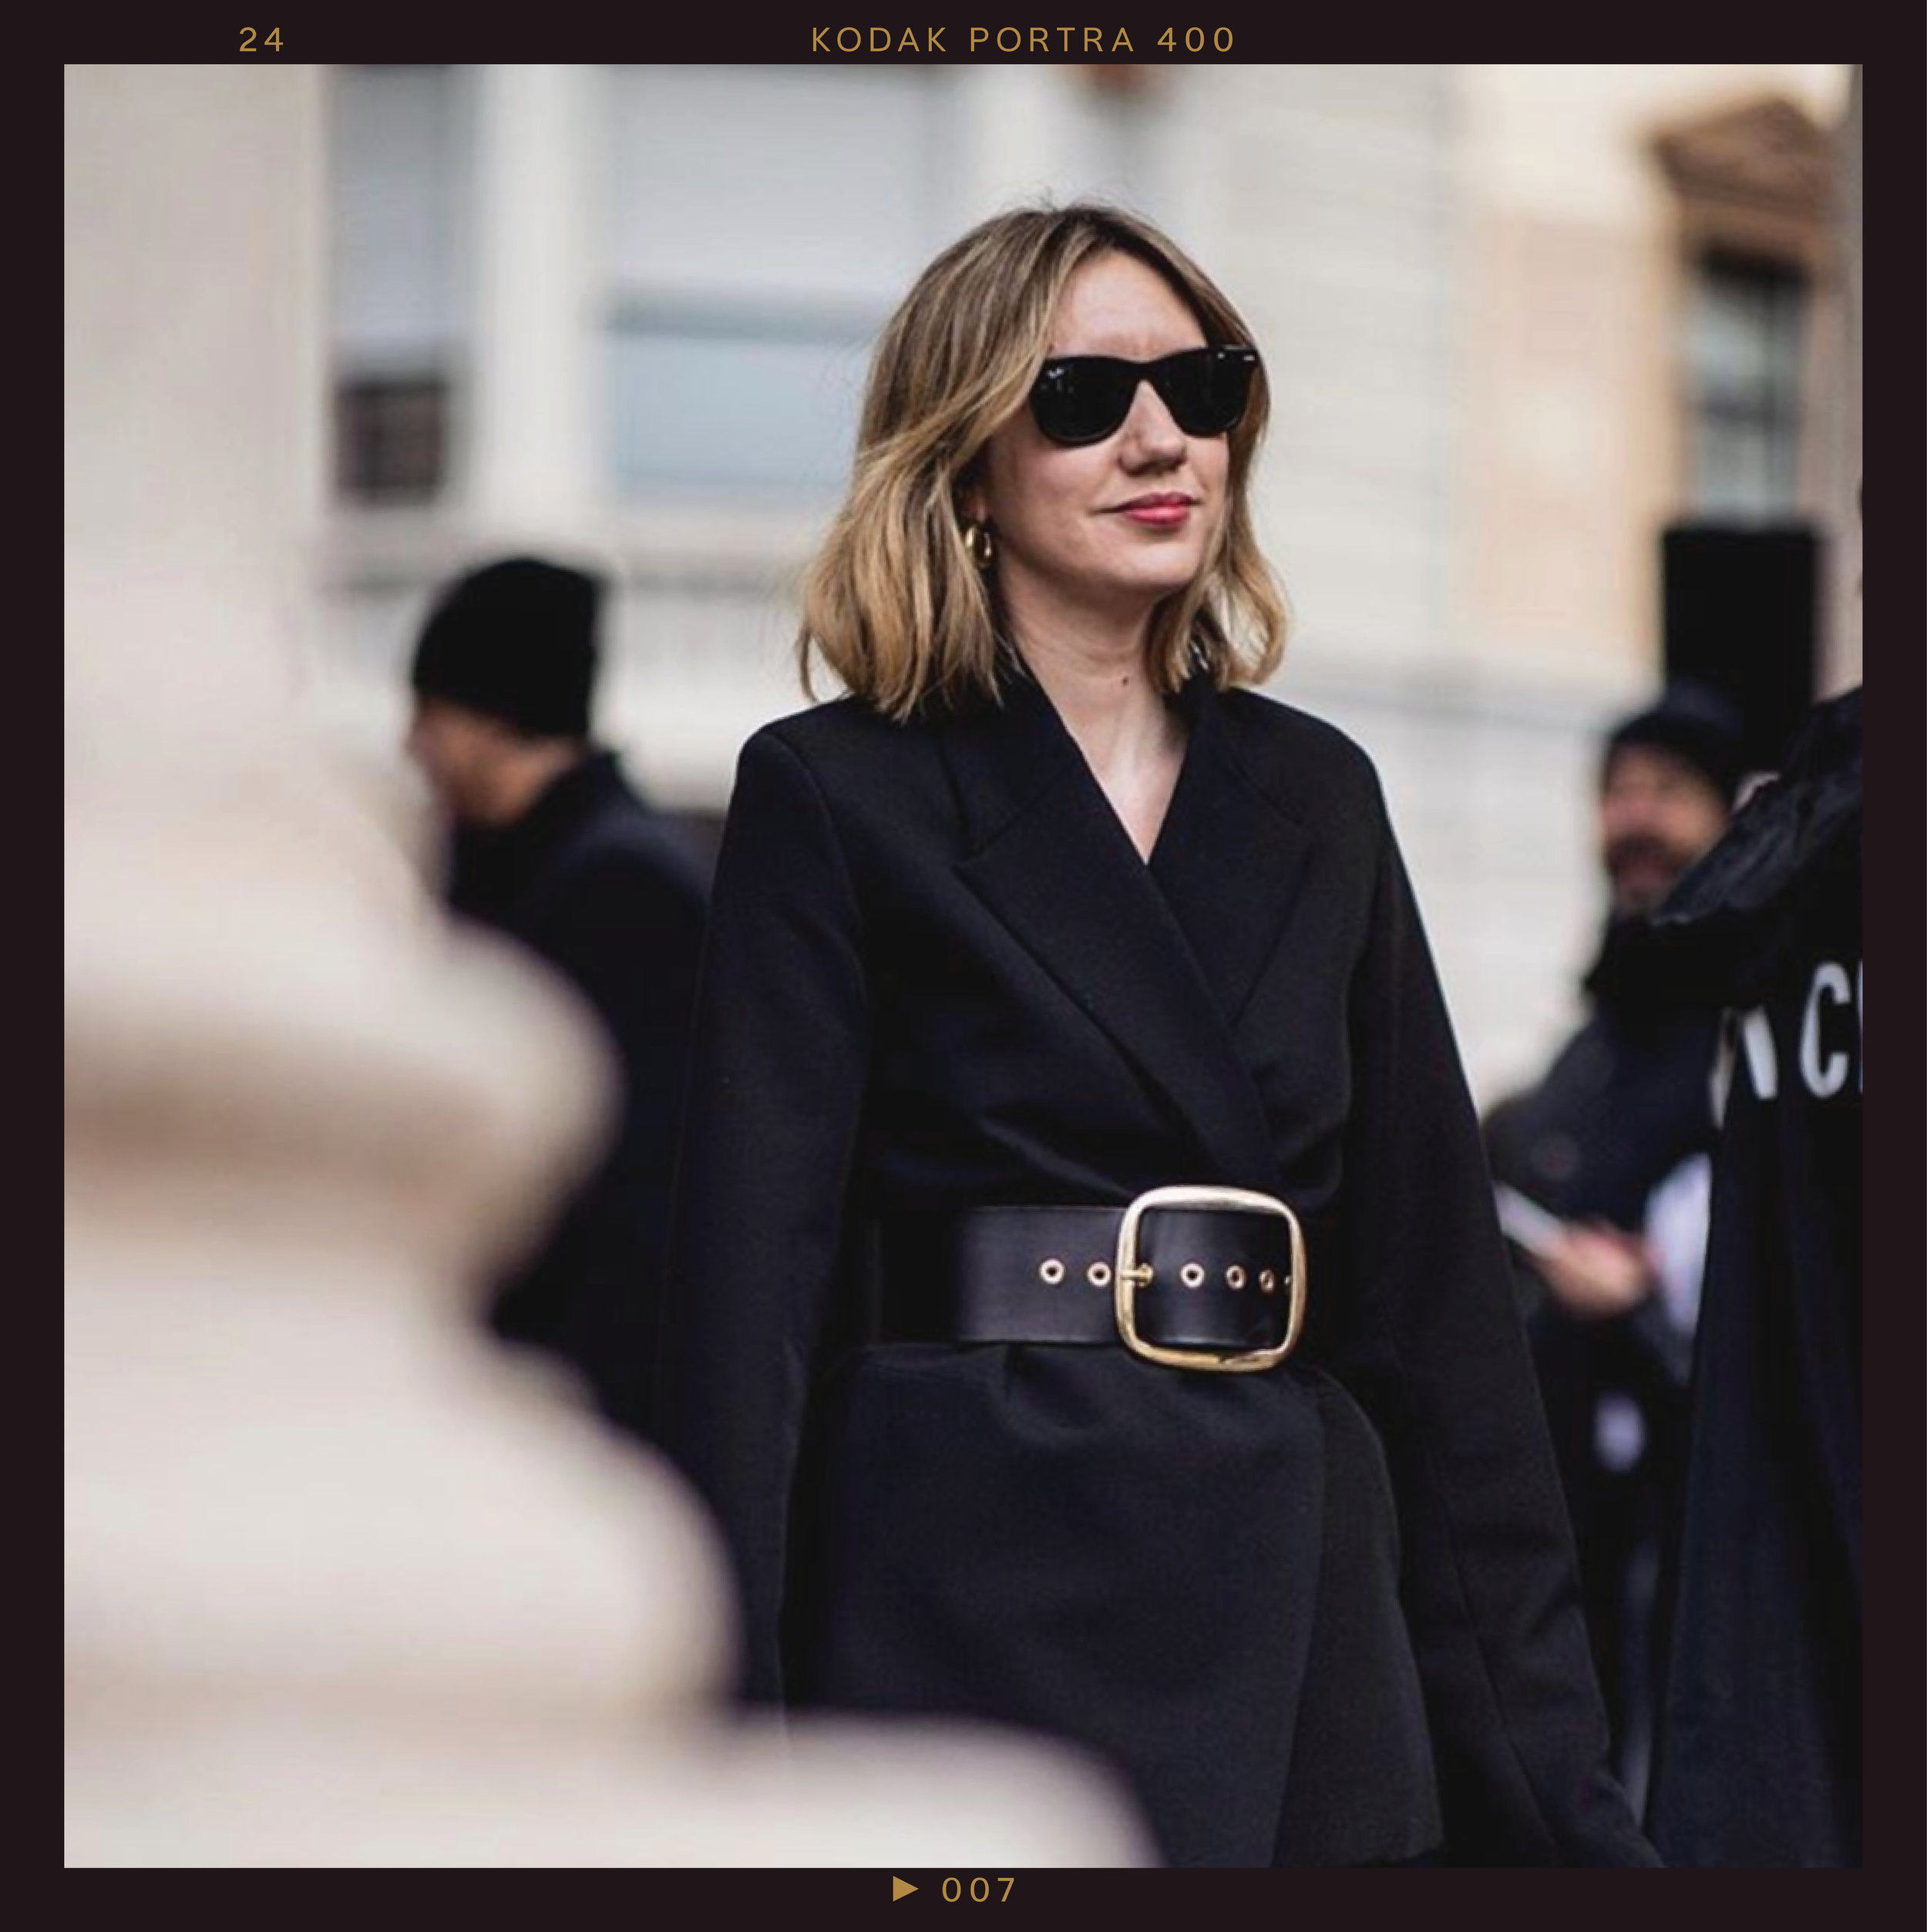 Belted Blazers - The trendiest way to wear your blazer in 2019? Cinched at the waist with a bold belt. We lost count the number of times we saw the flattering look on the runway. The best part? It's super easy to pull off.